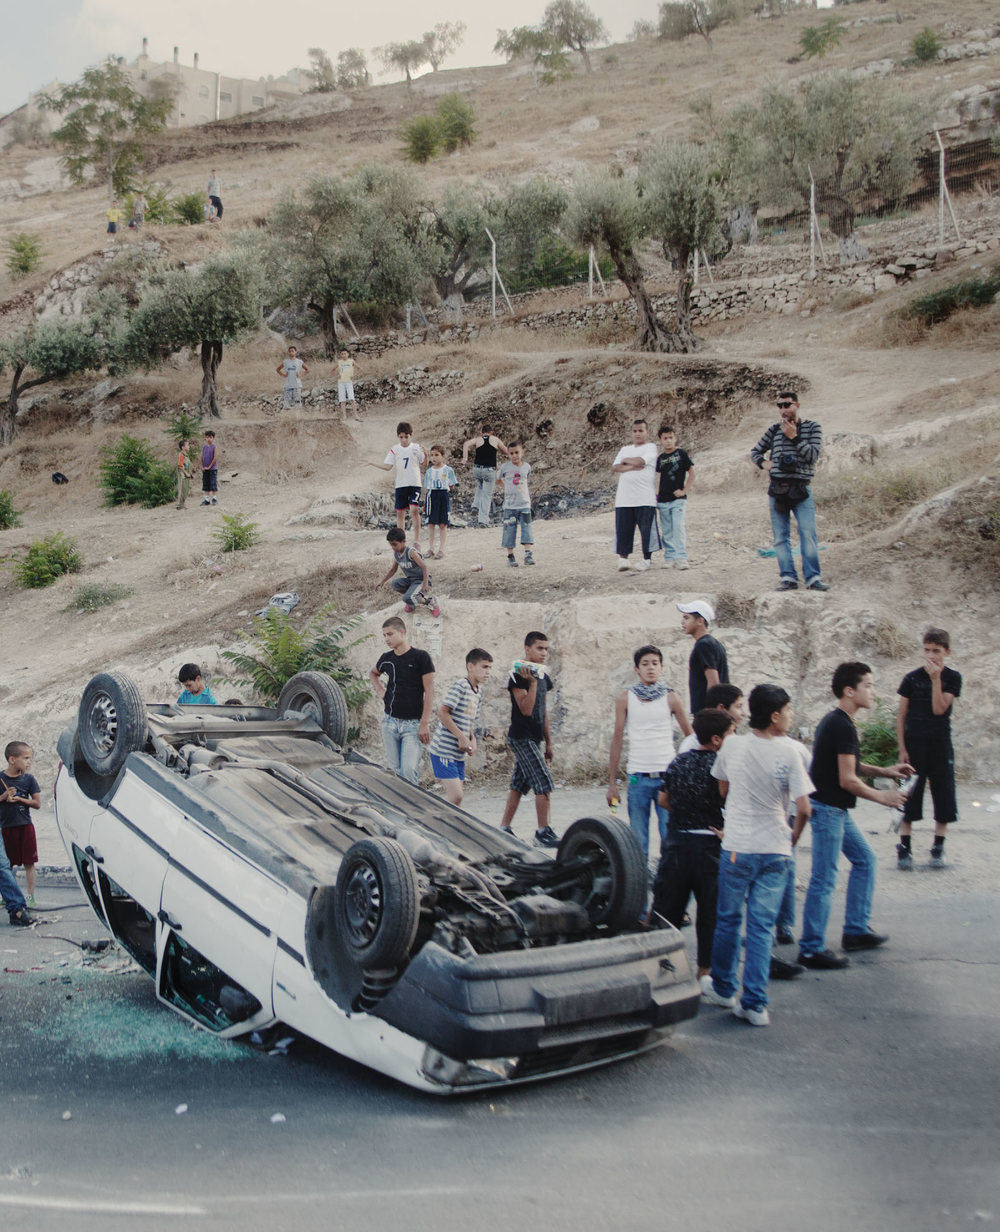 Some Palestinian boys admire their handiwork after flipping a broken car upside down during a demonstration in East Jerusalem, 2010.